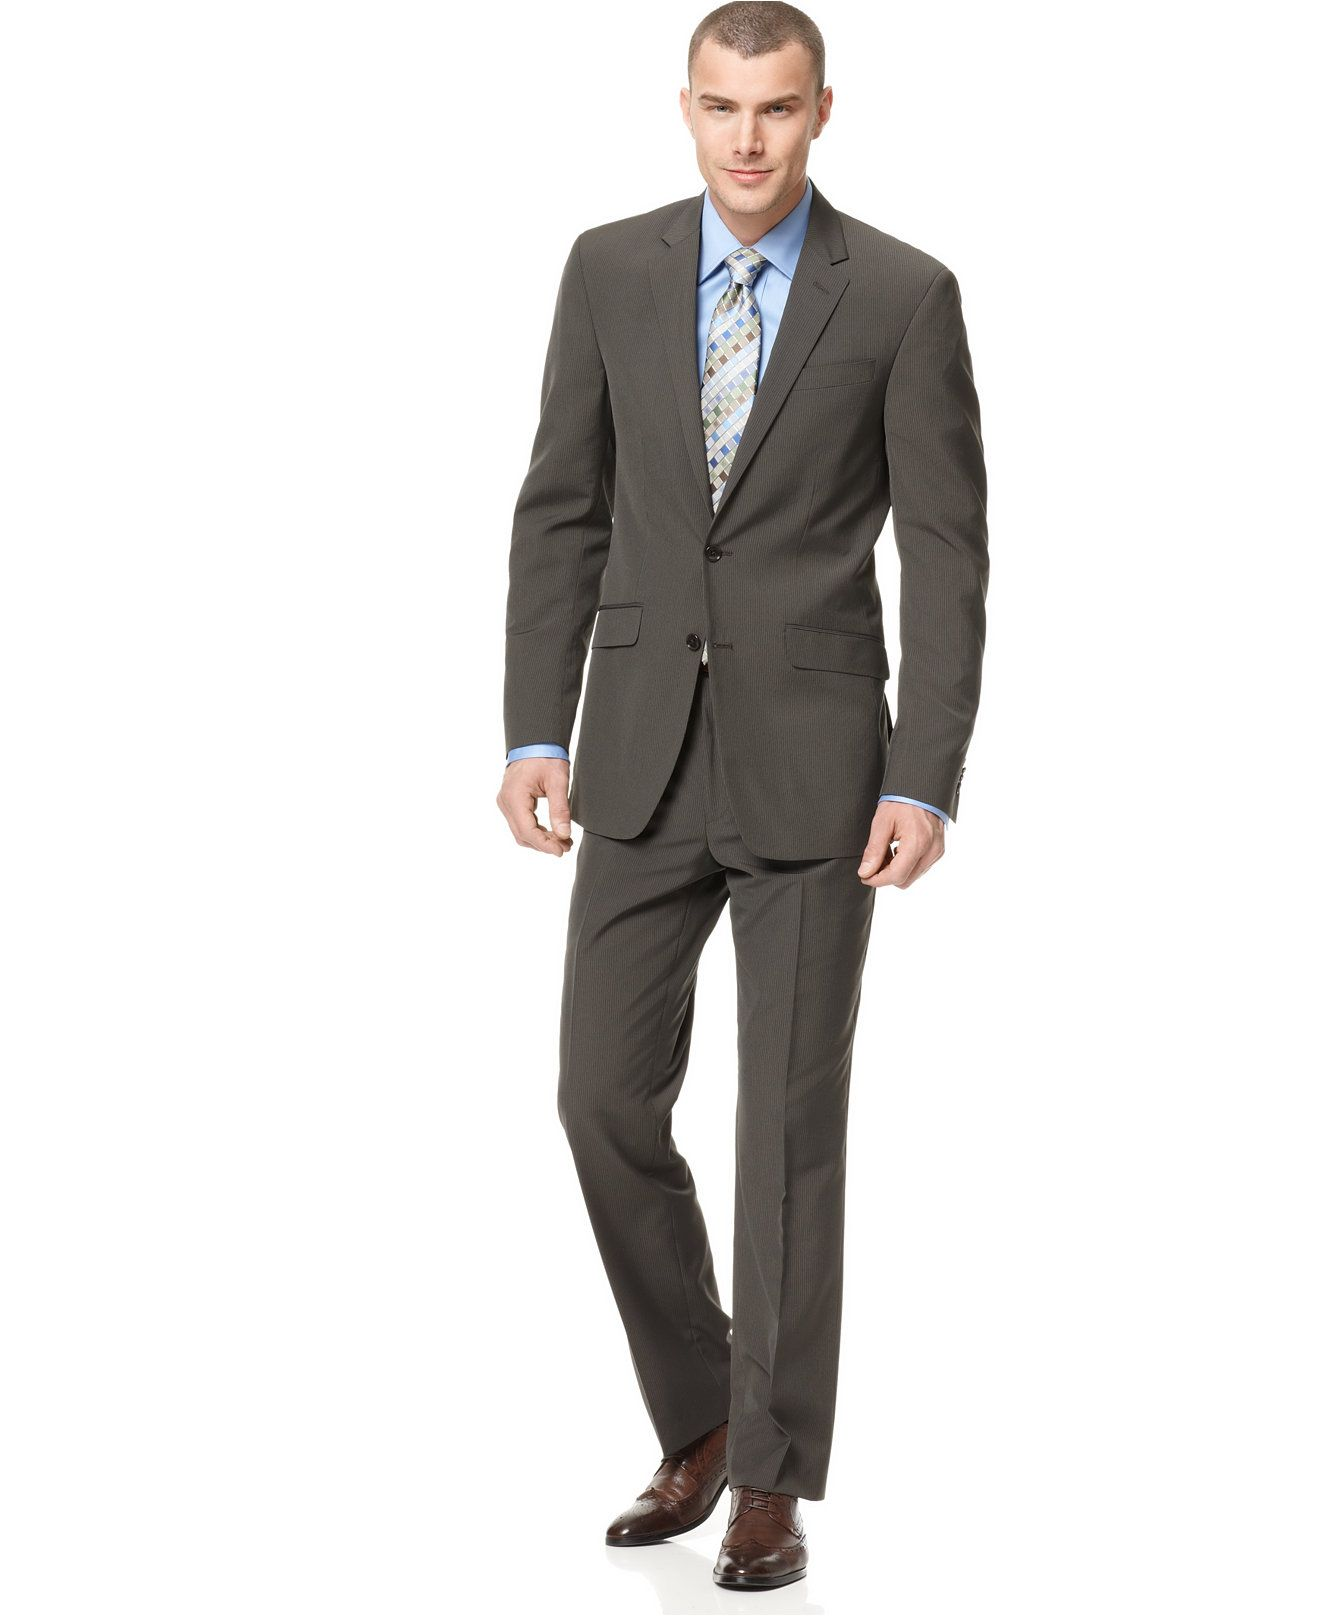 Kenneth Cole Reaction Brown Stripe Slim-Fit Suit | Slim fit suits ...